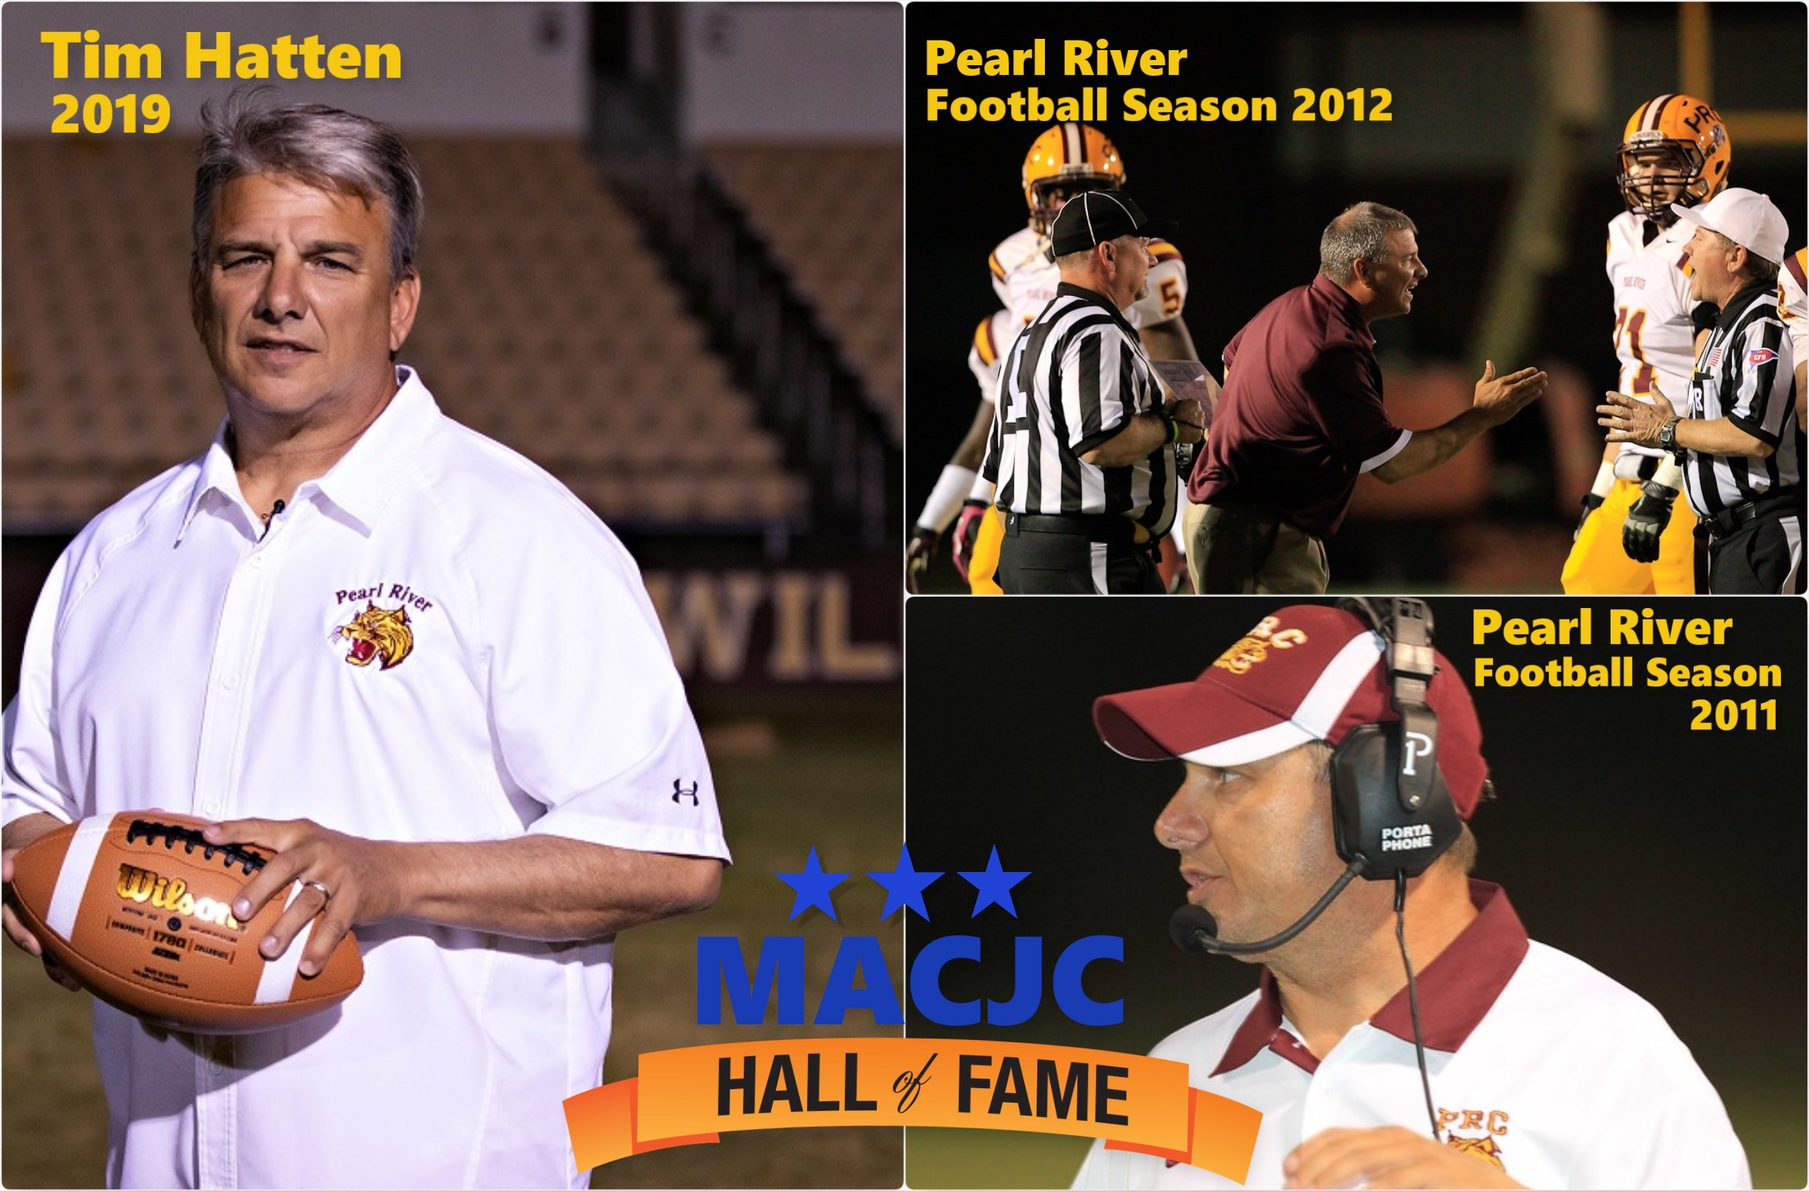 Legendary Pearl River football coach Tim Hatten set to be enshrined in MACJC Hall of Fame